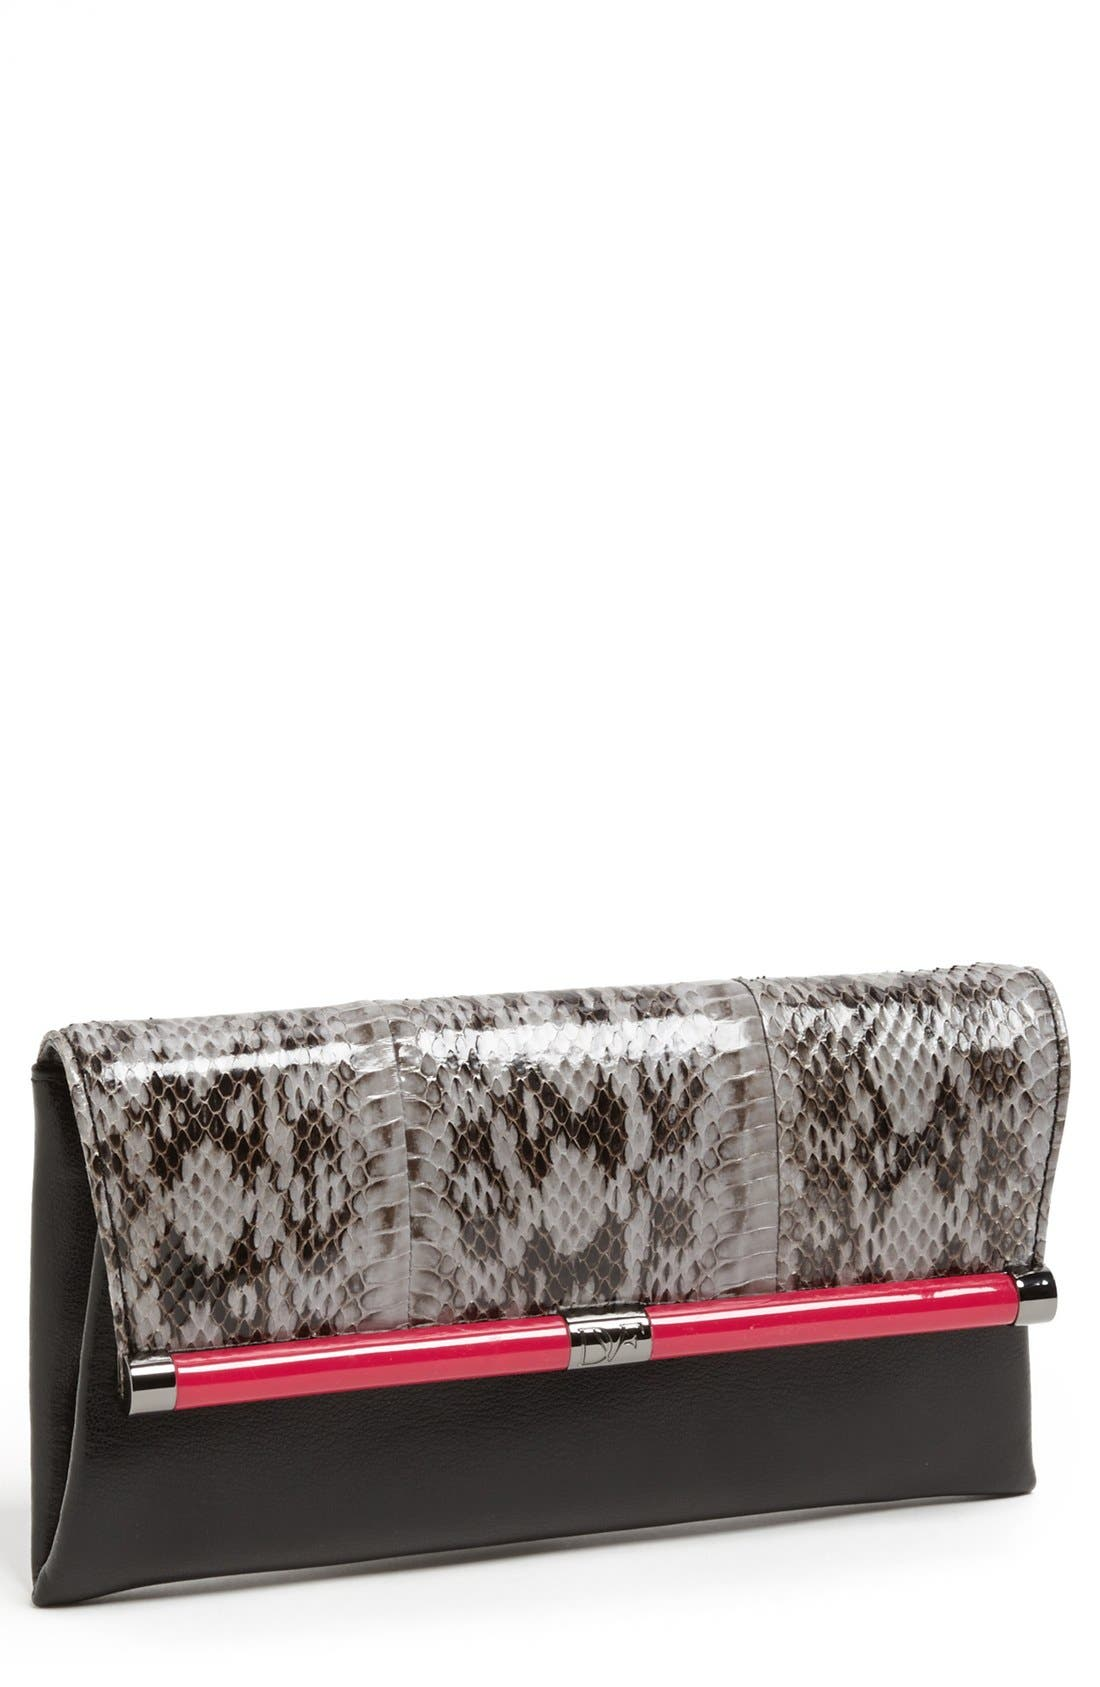 Alternate Image 1 Selected - Diane von Furstenberg '440' Snakeskin Envelope Clutch